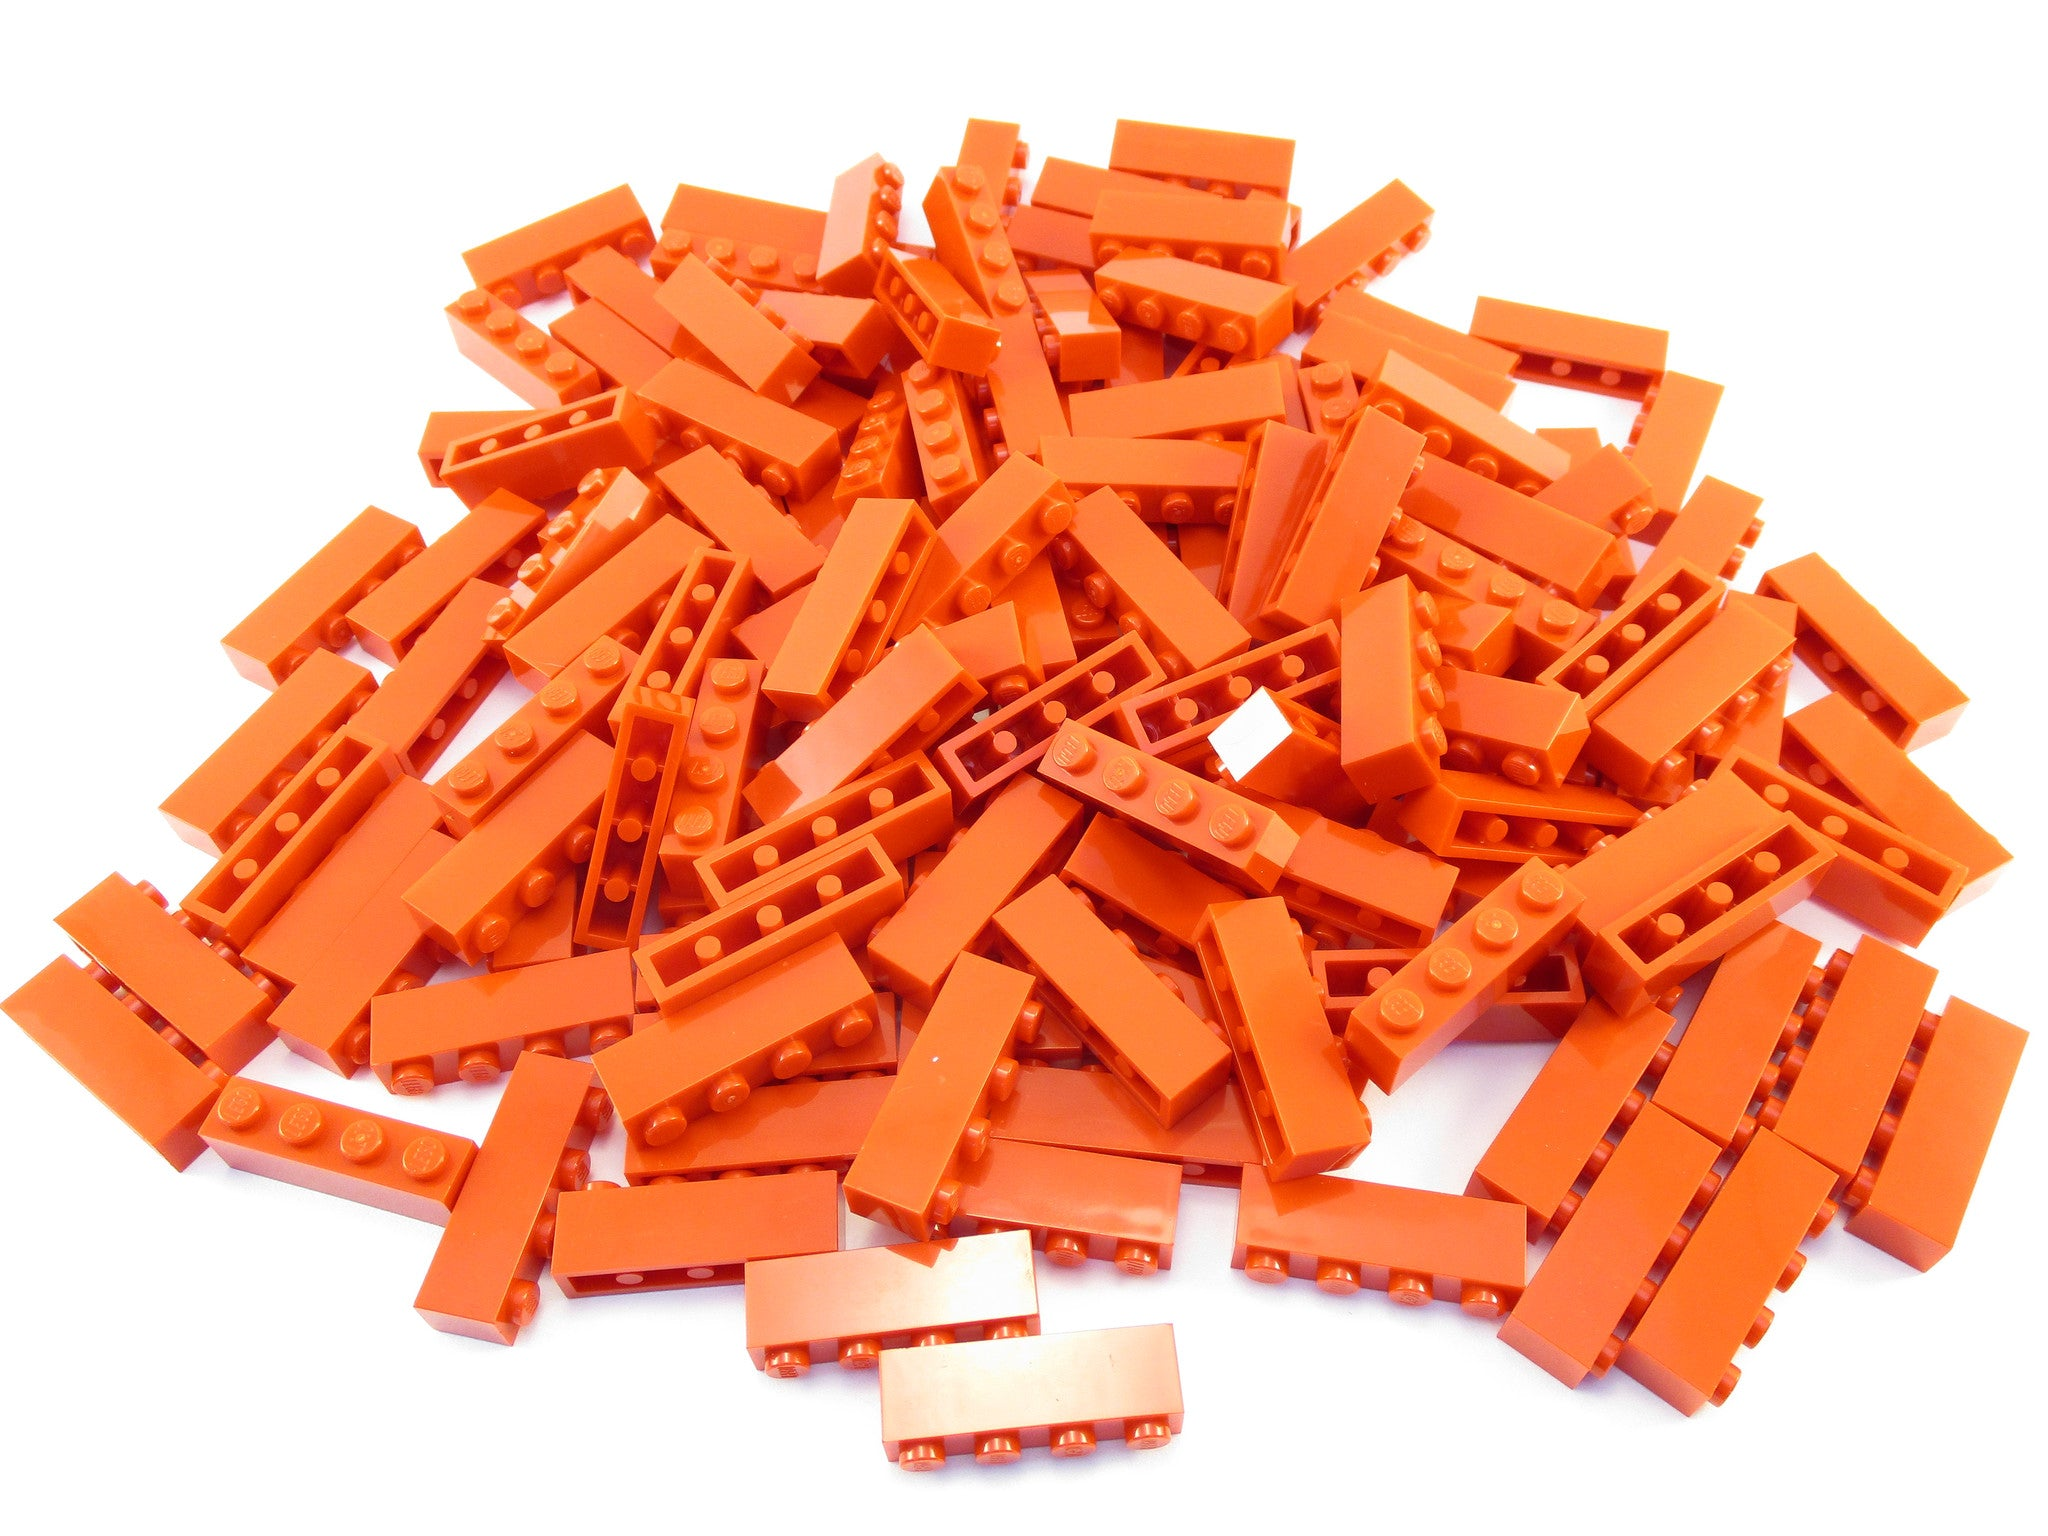 LEGO Red Brick 1x4 Lot of 100 Parts Pieces 3010